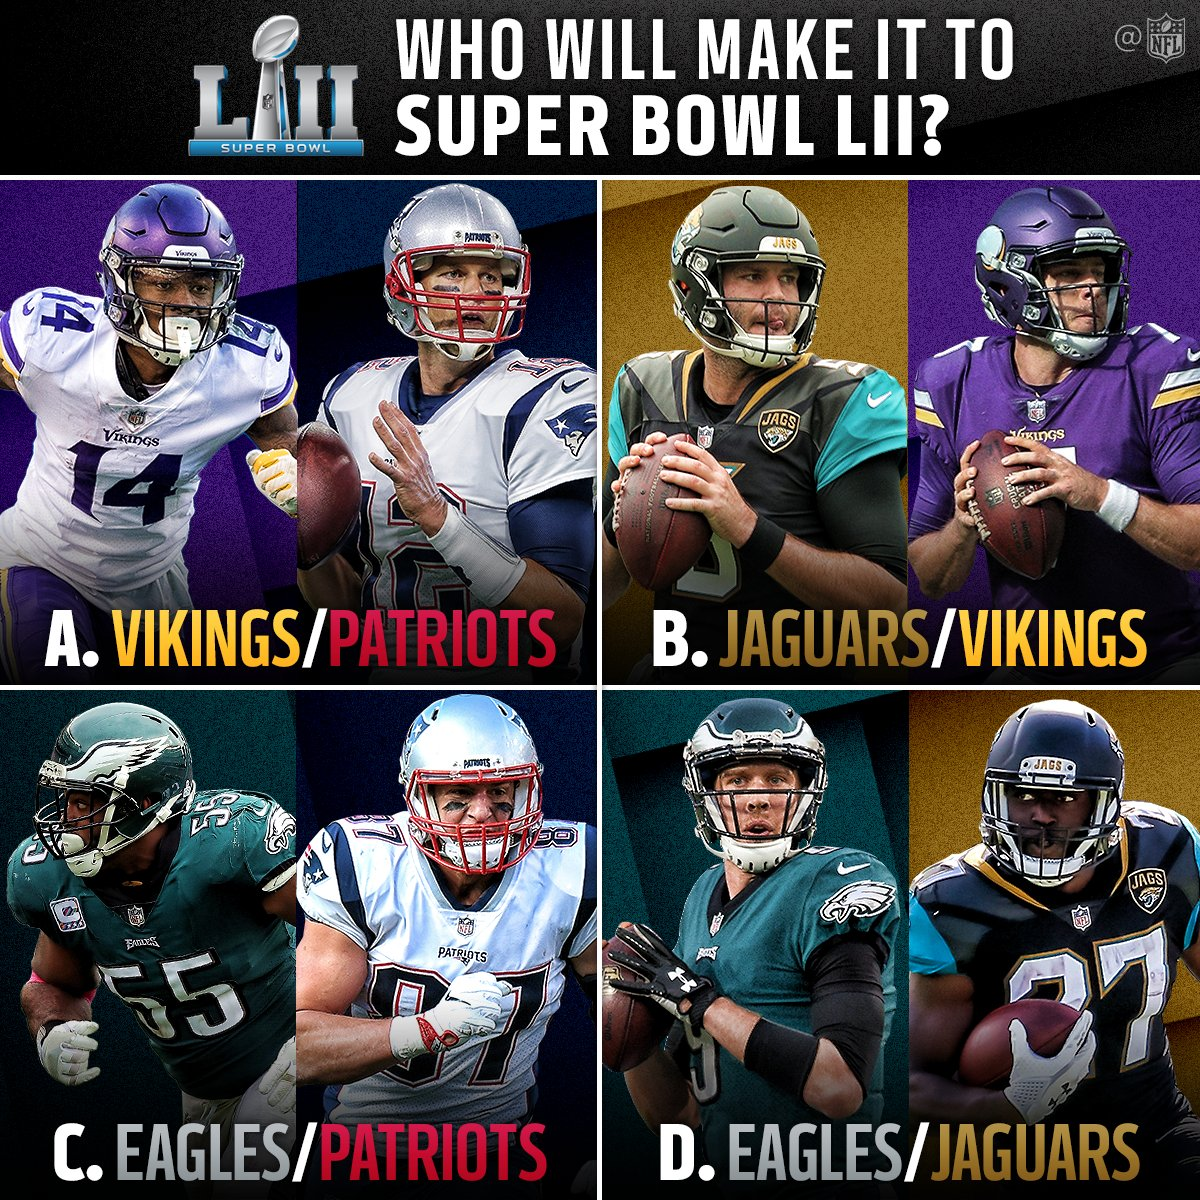 The @SuperBowl LII matchup will be...  A, B, C, or D? �� #SBLII https://t.co/jzQ83LgKwW